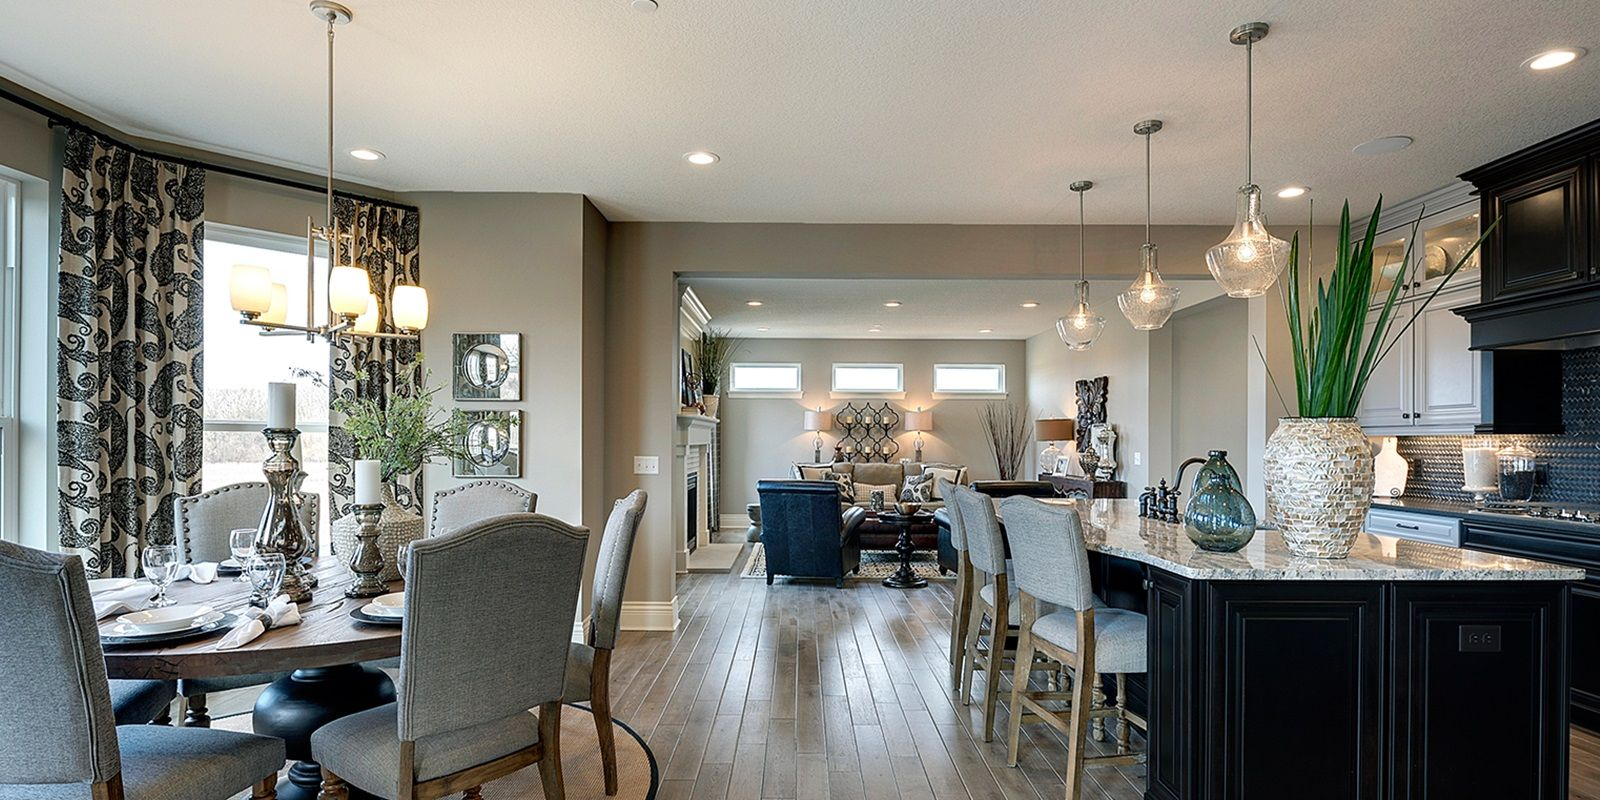 Design Your Mattamy Home: Minnesota Design Studio | Mattamy Homes | New  Kitchen Ideas | Pinterest | Dining Area, Minnesota And Gta